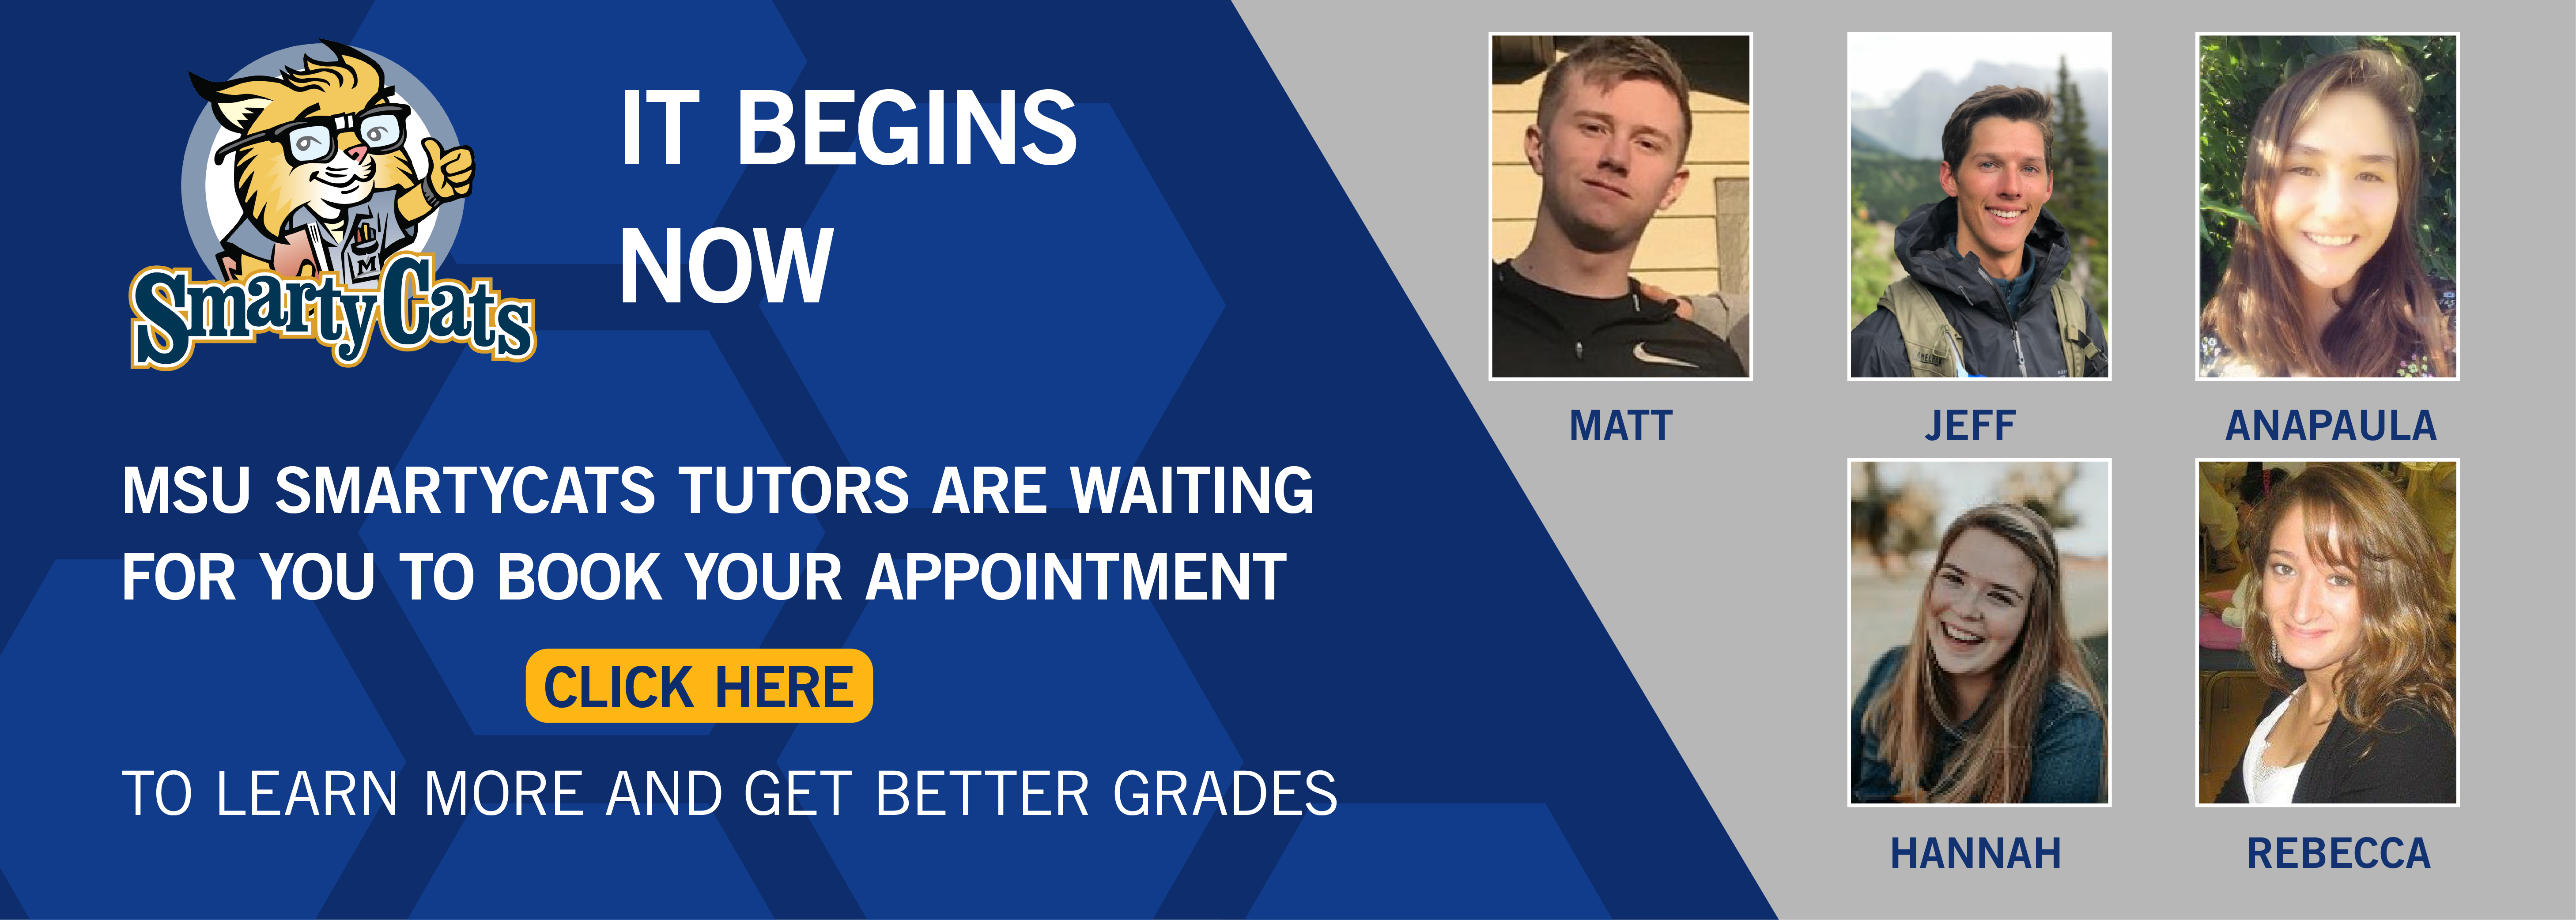 It Begins Now! book your appointment with the tutor today!